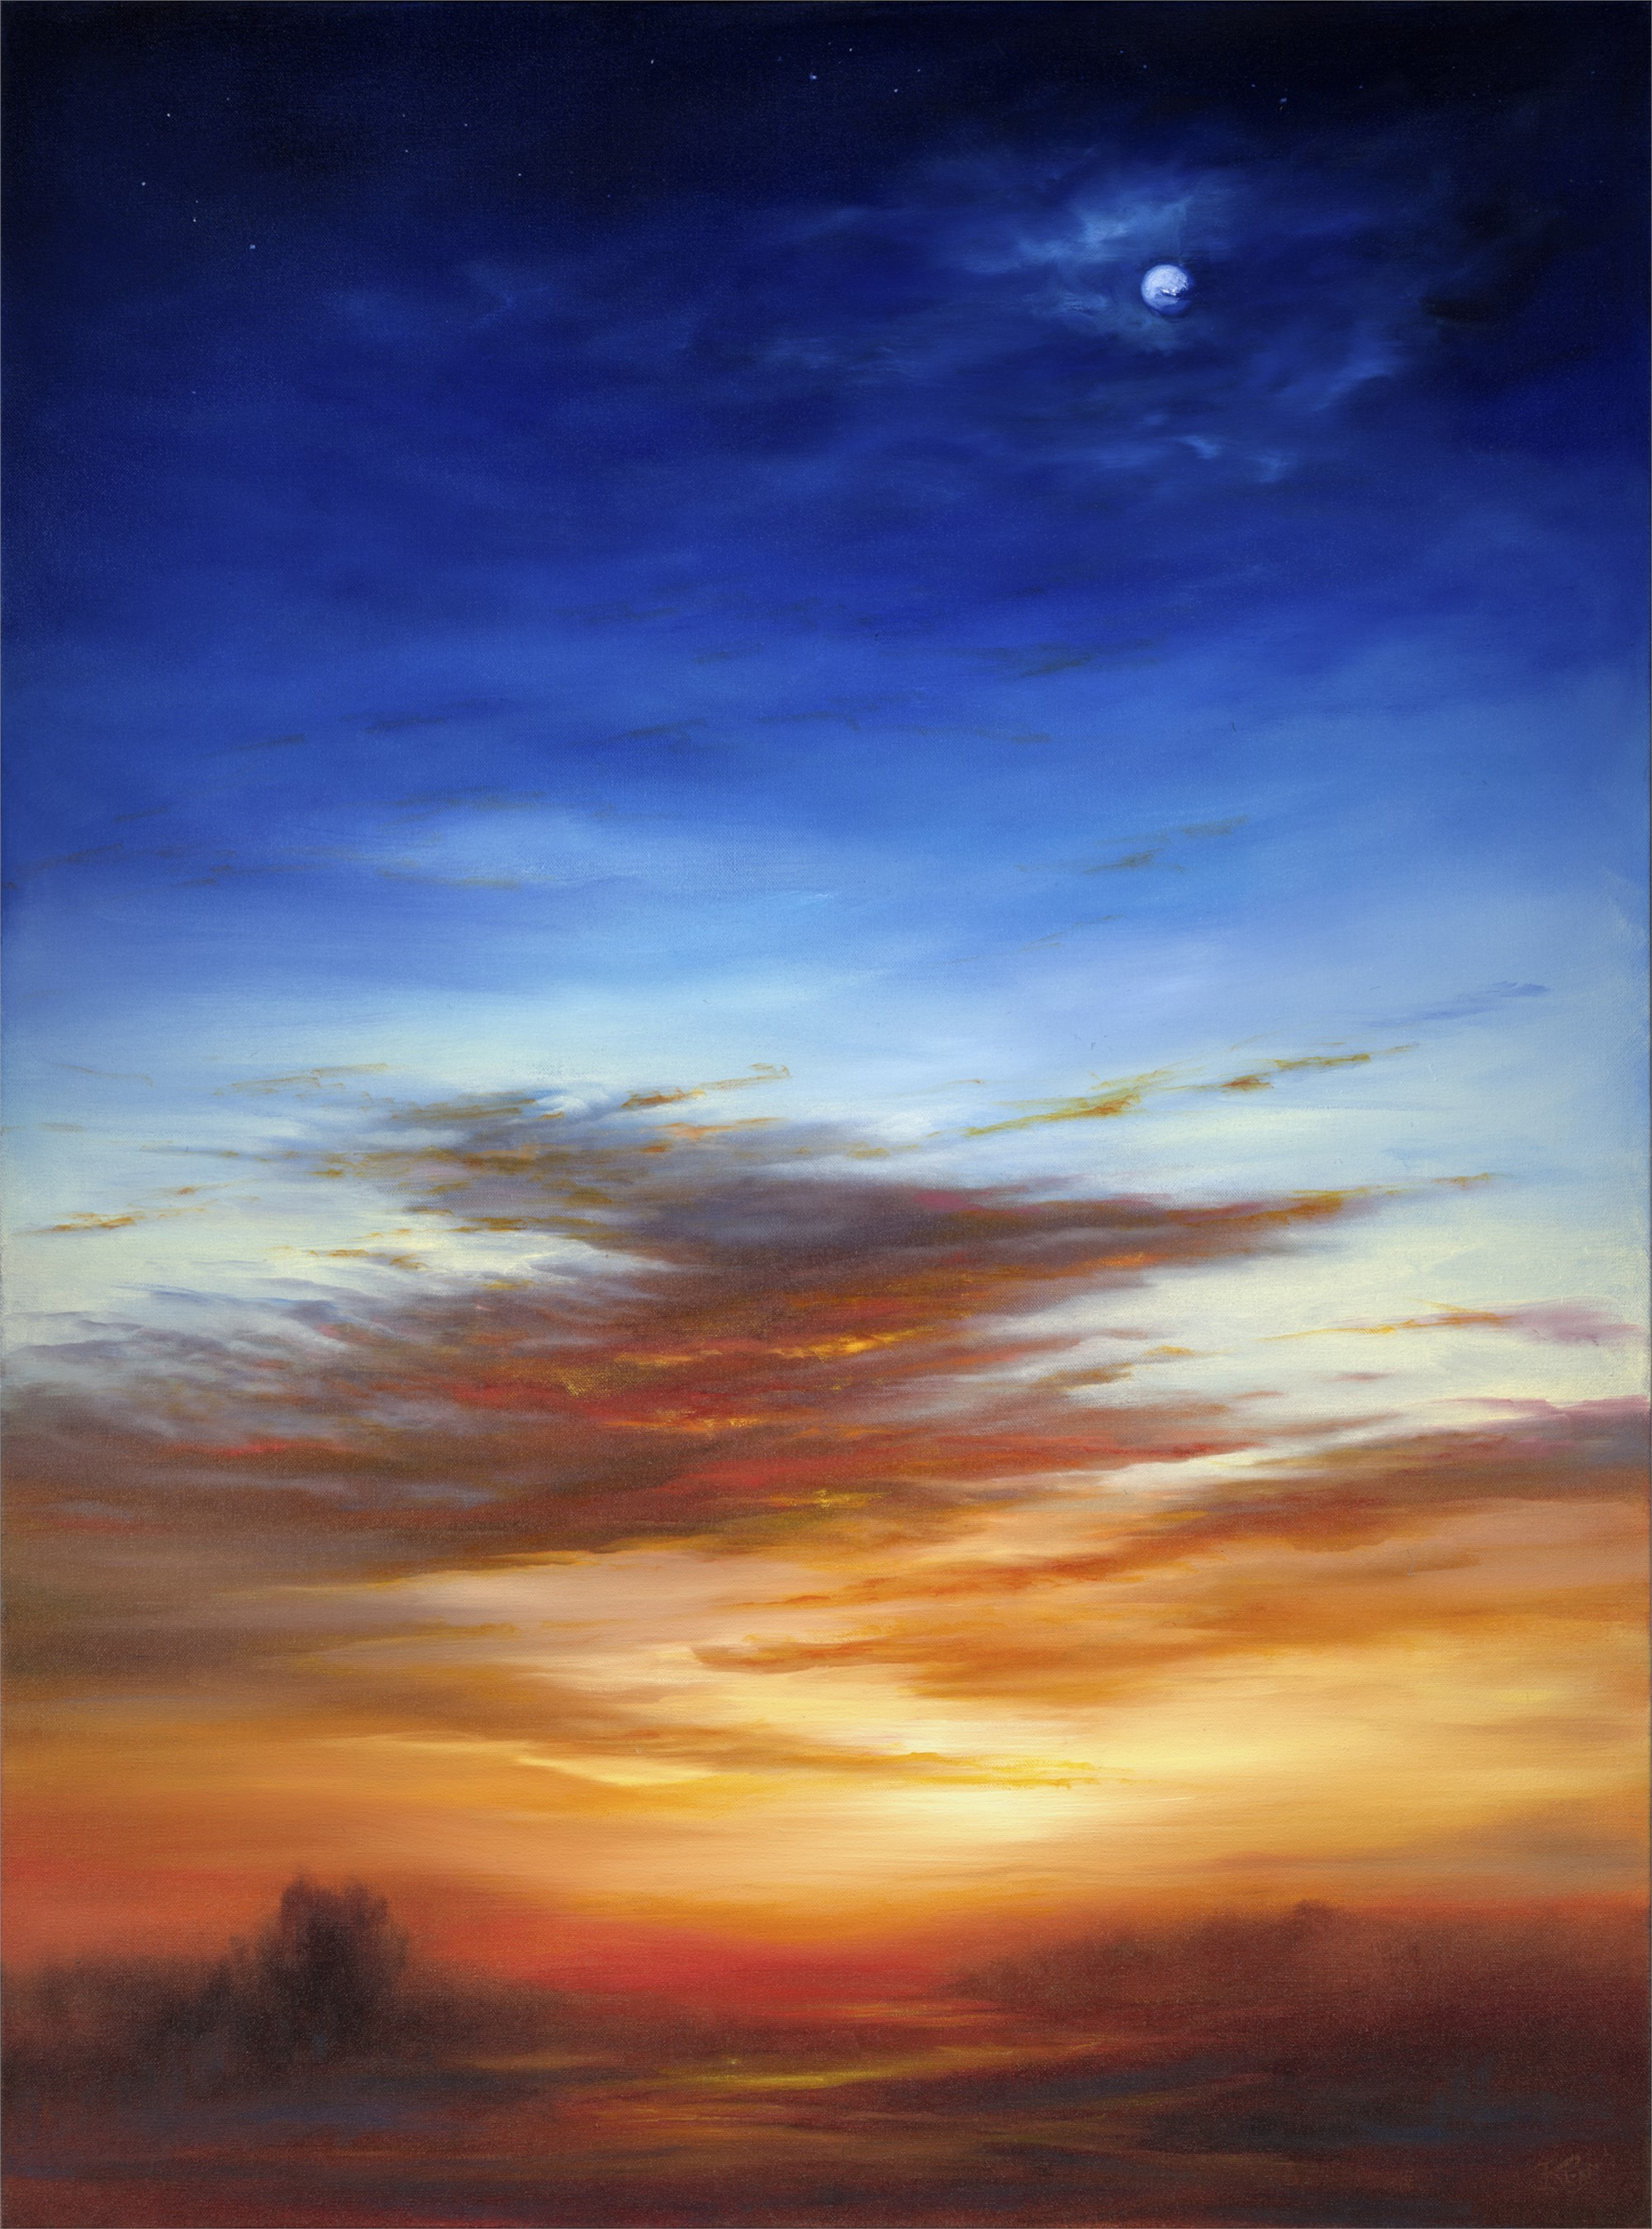 Between the Moon and the Sun by Cheryl Kline